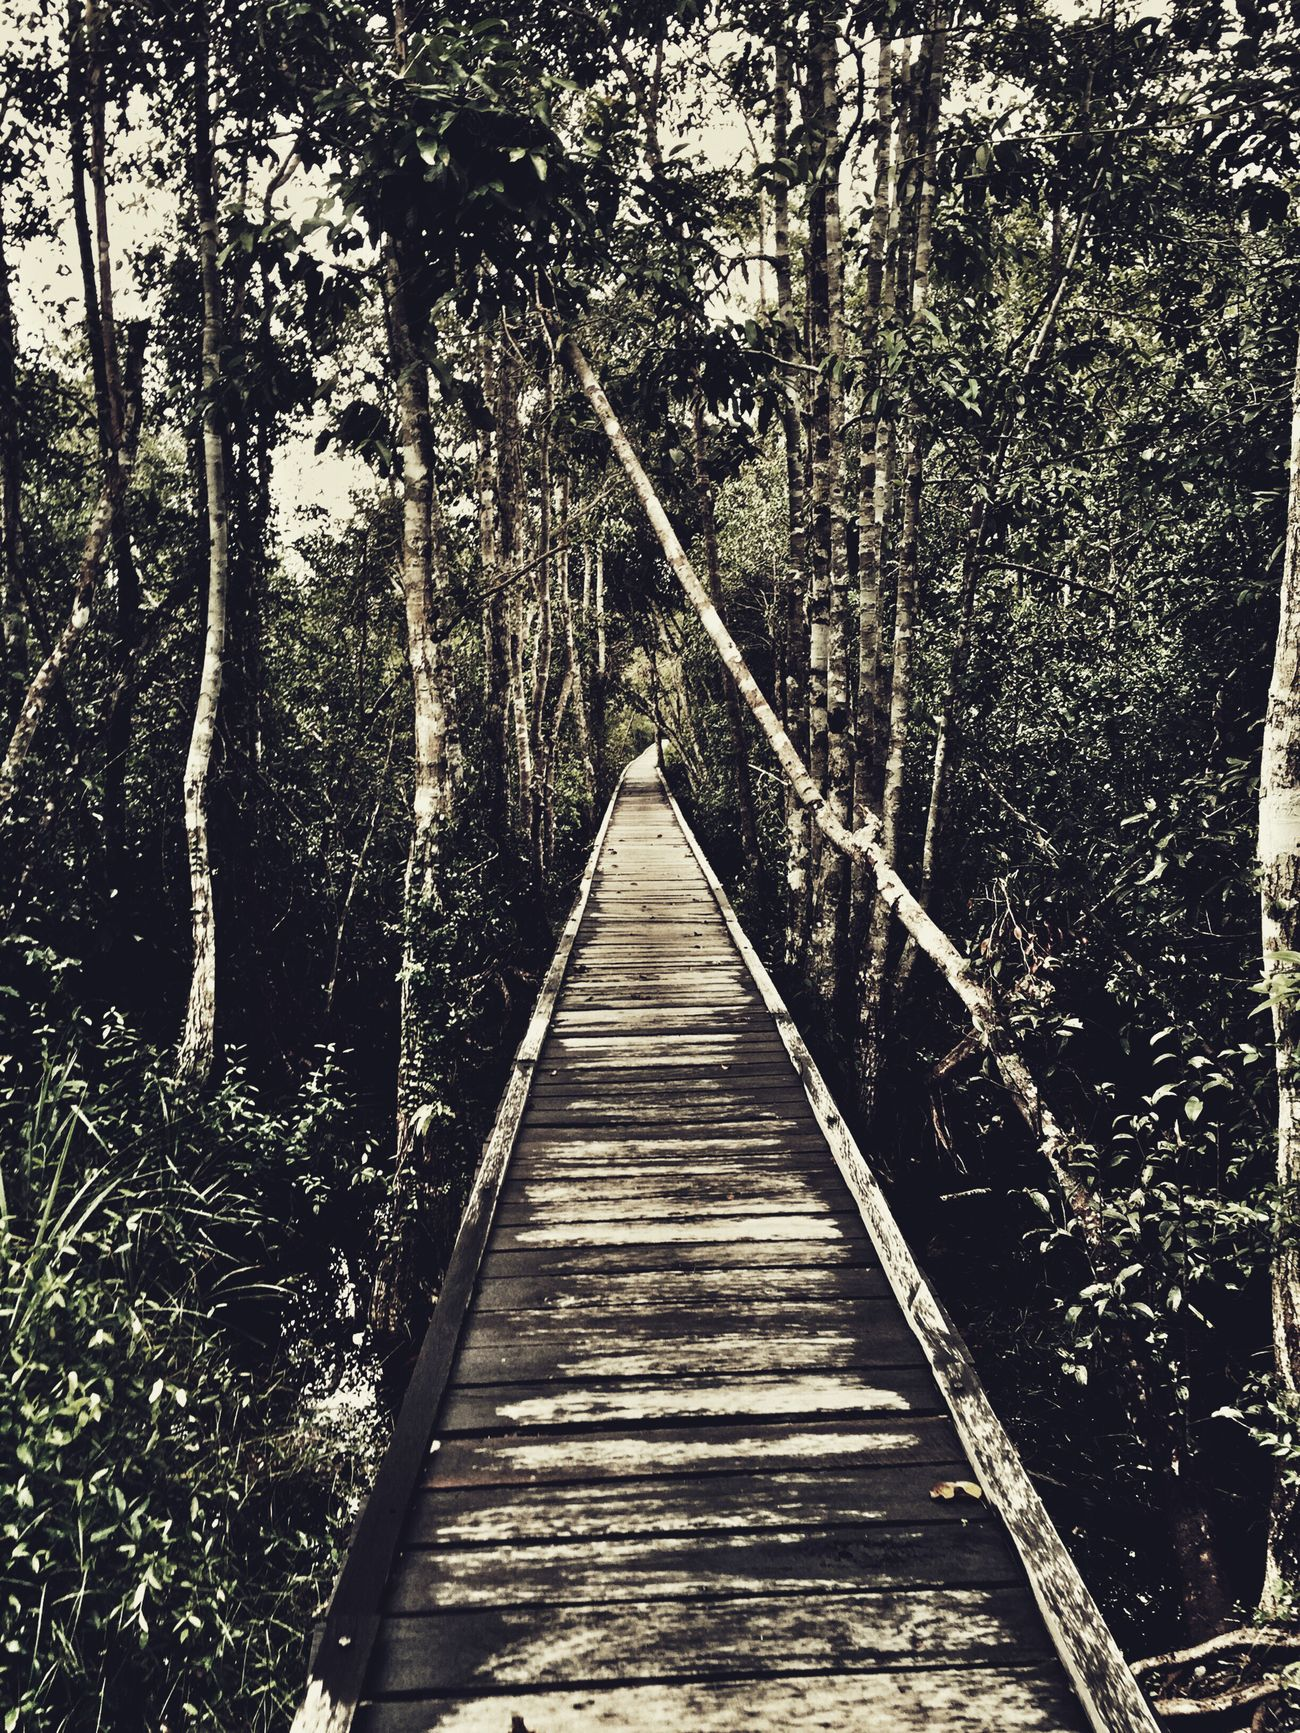 The Secret Spaces Efficient jungle pathing The Journey Is The Destination CentralBorneo Jungle Jungle Trekking Kalimantan Kalimantantengah Pangkalanbun Tanjungputing Tanjung Puting National Park INDONESIA Neighborhood Map Neighborhood Map The Great Outdoors - 2017 EyeEm Awards The Great Outdoors - 2017 EyeEm Awards